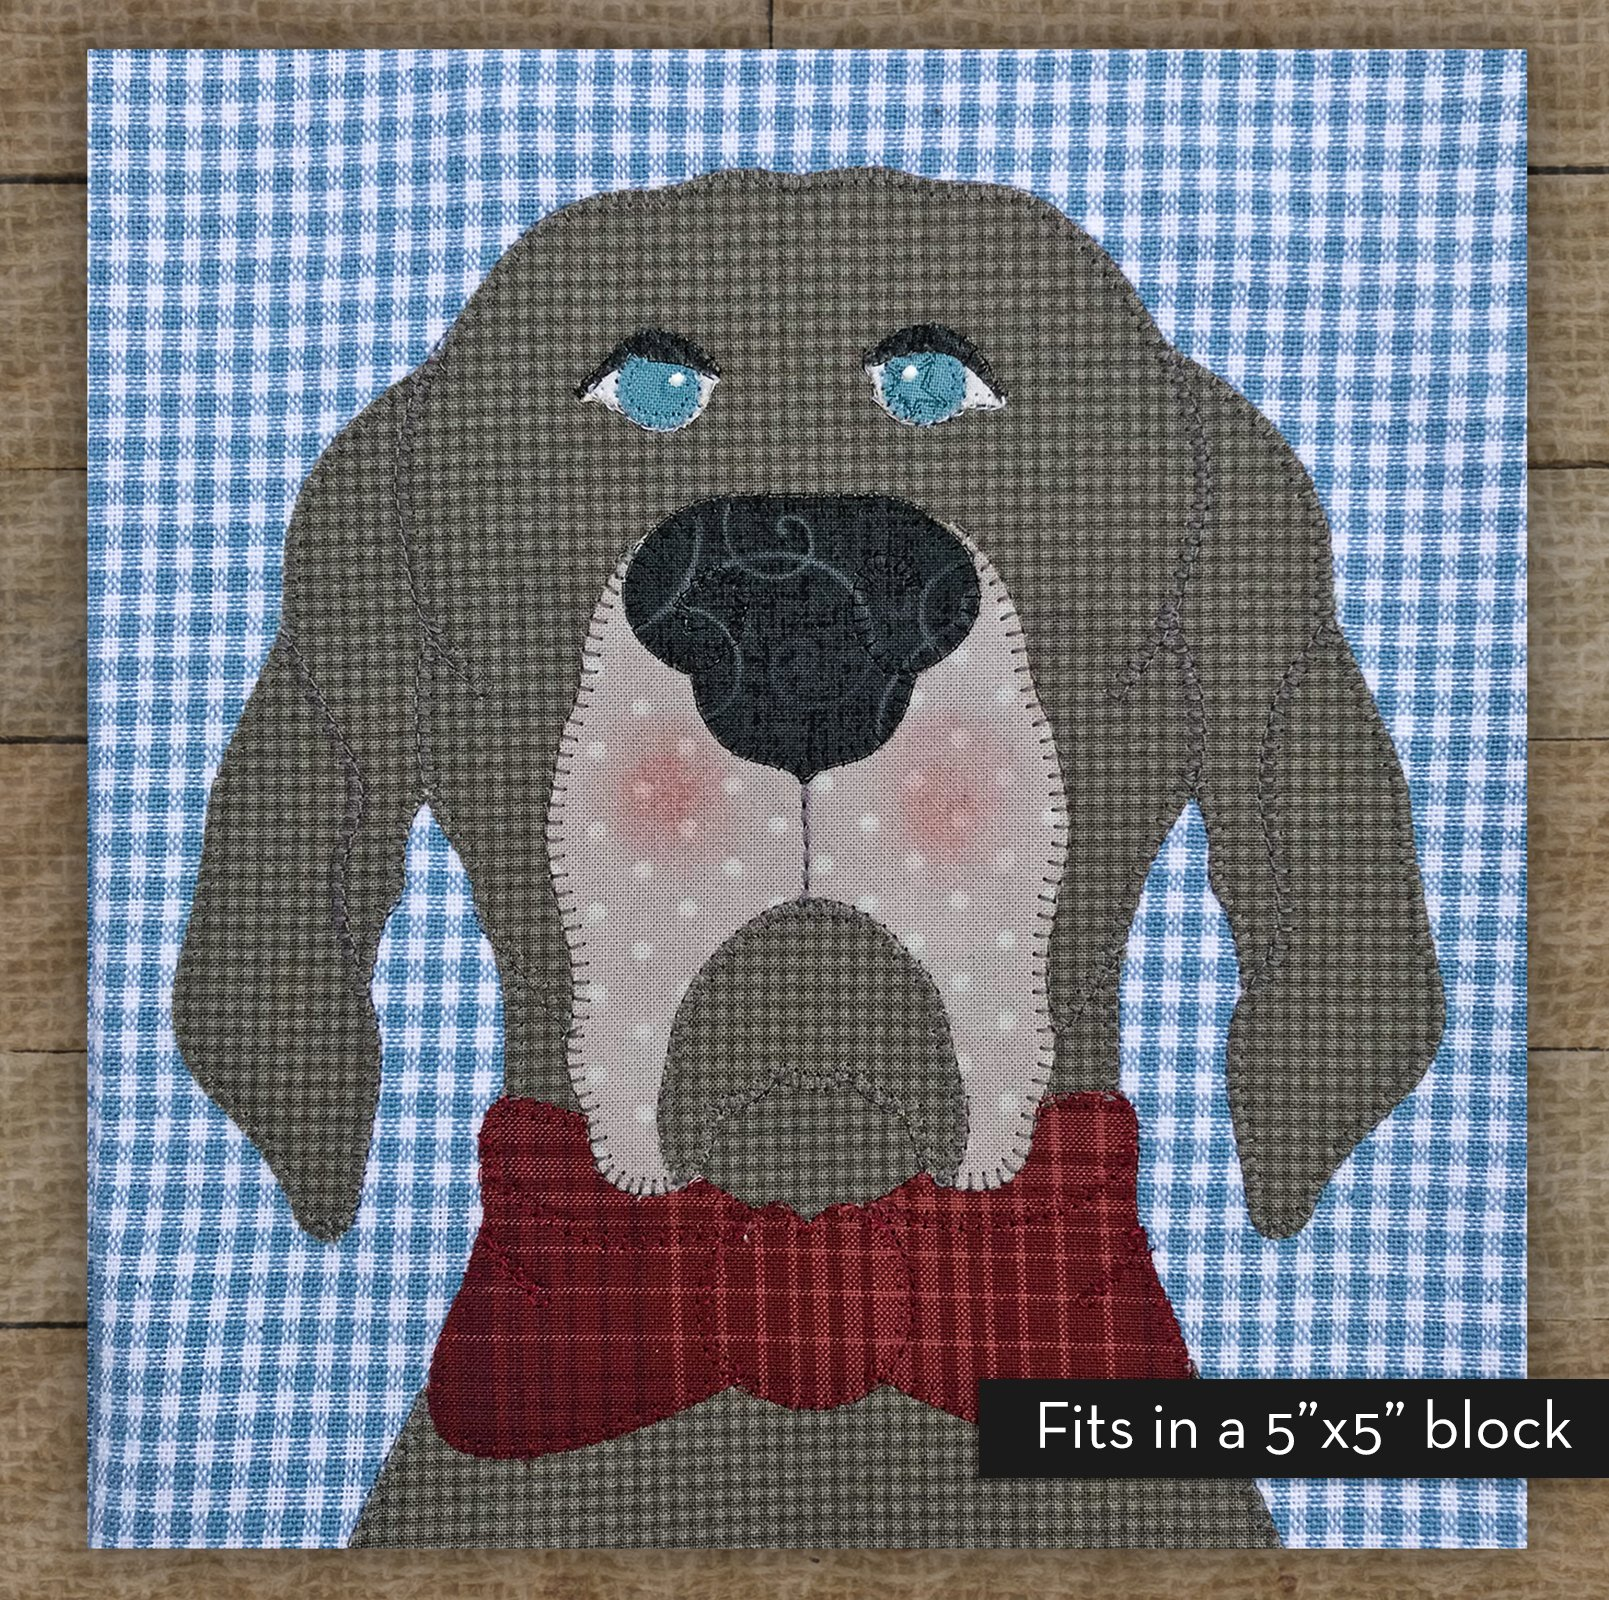 Small Weimaraner - Precut Fused Applique Kit